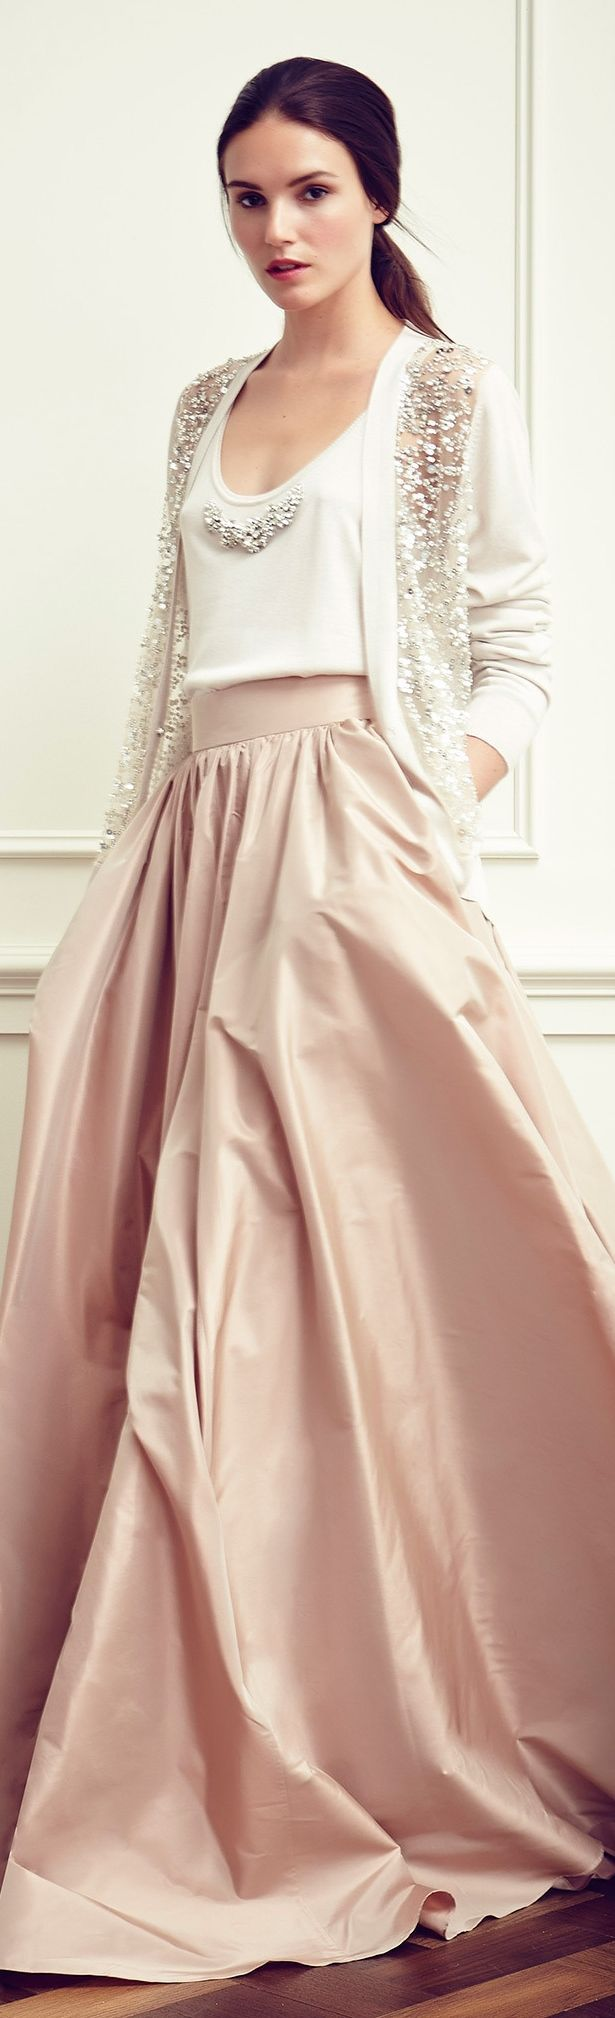 Jenny Packham Resort 2015. Love the casual patterns in combination with the elegant fabrics. A very simple look - for tweens as well!